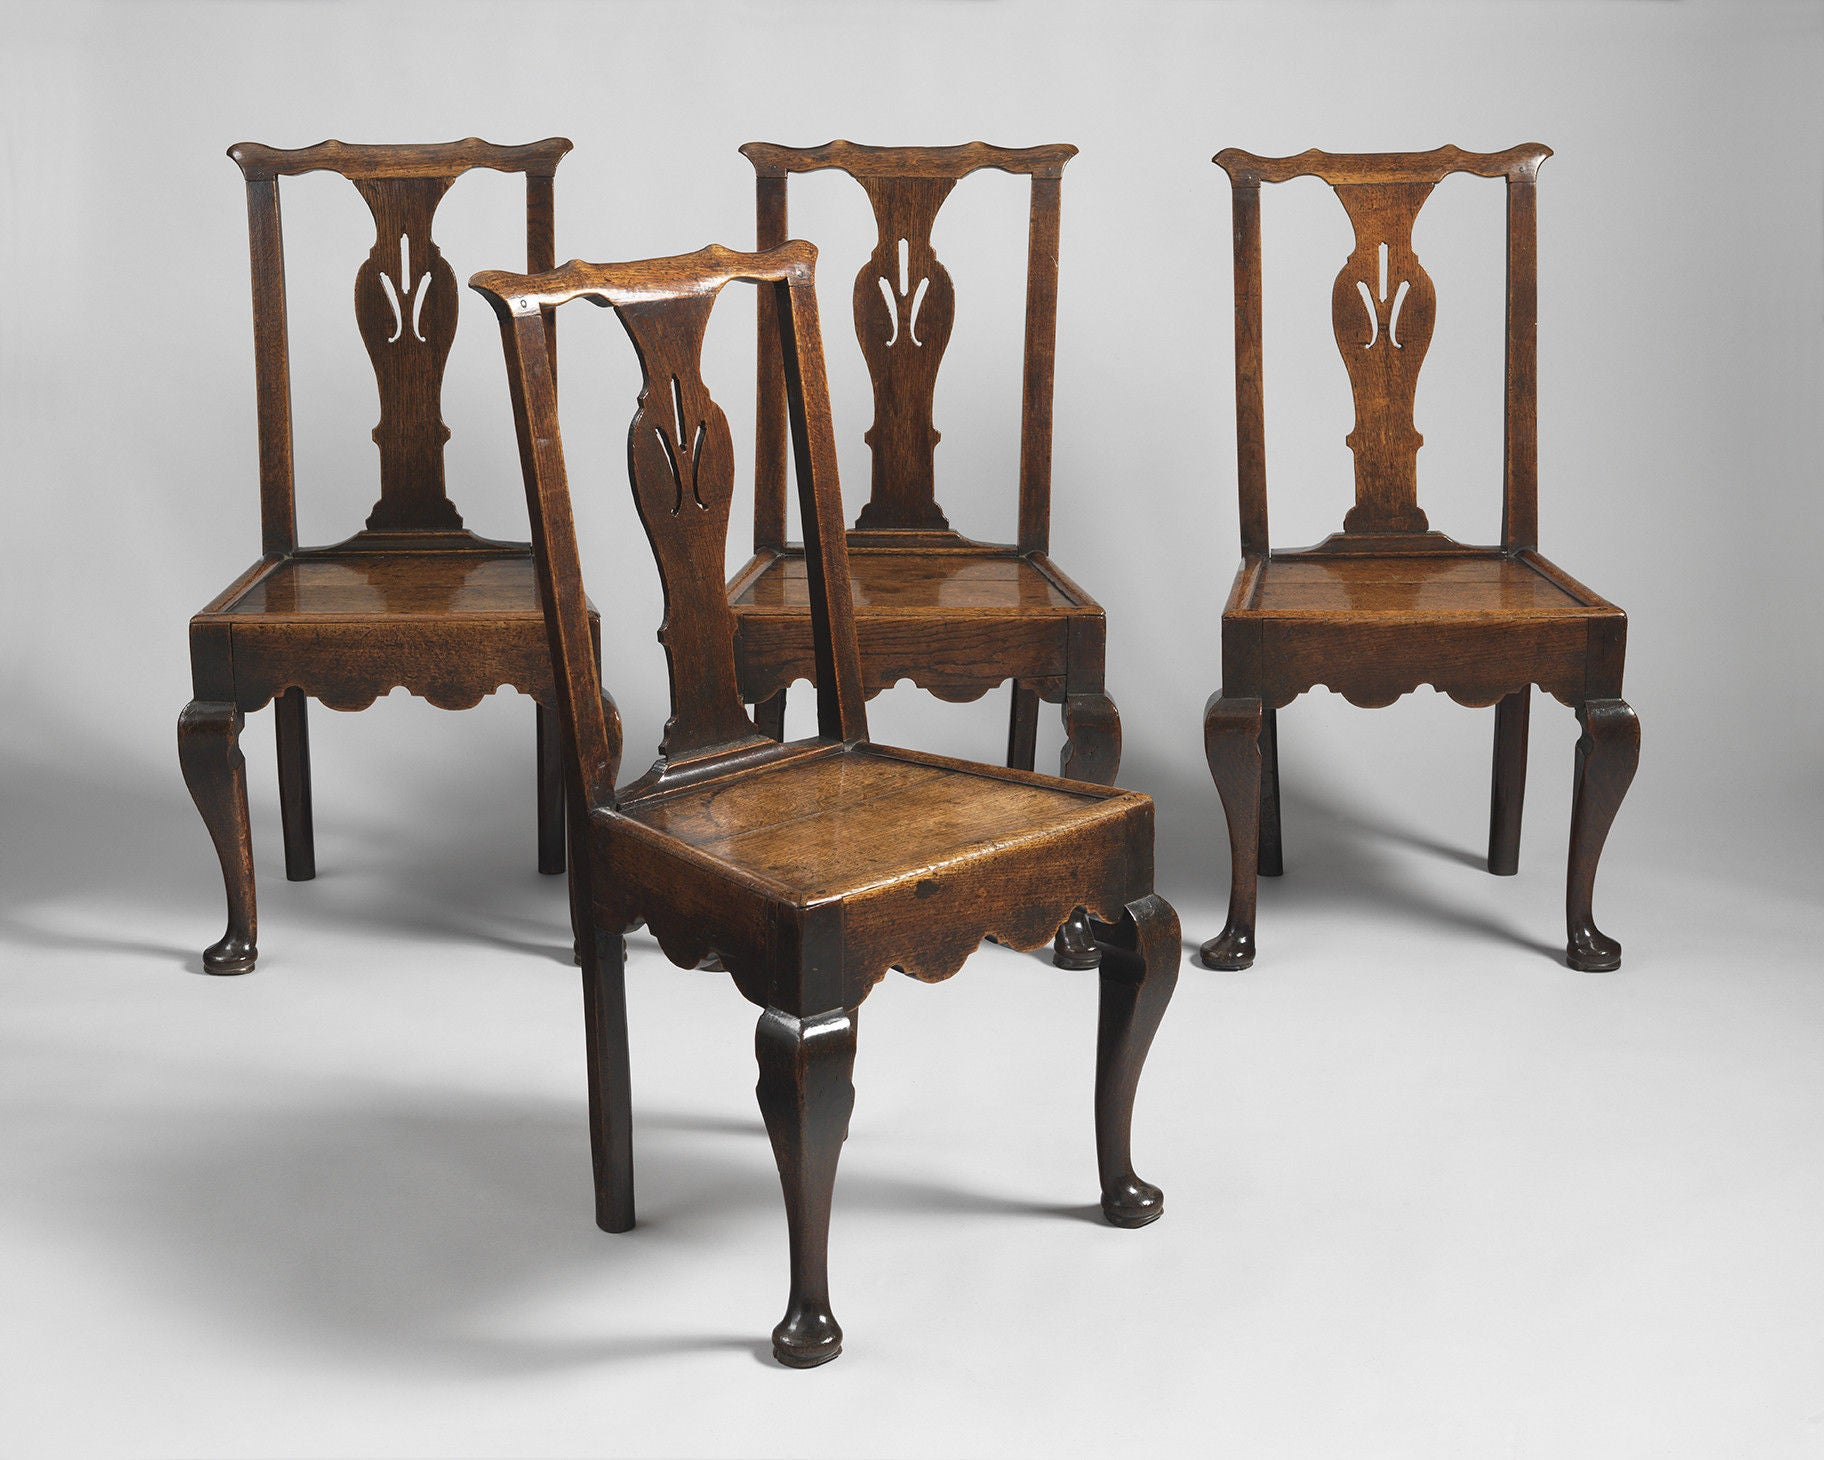 An Original Set of Four Cabriole Leg Chairs